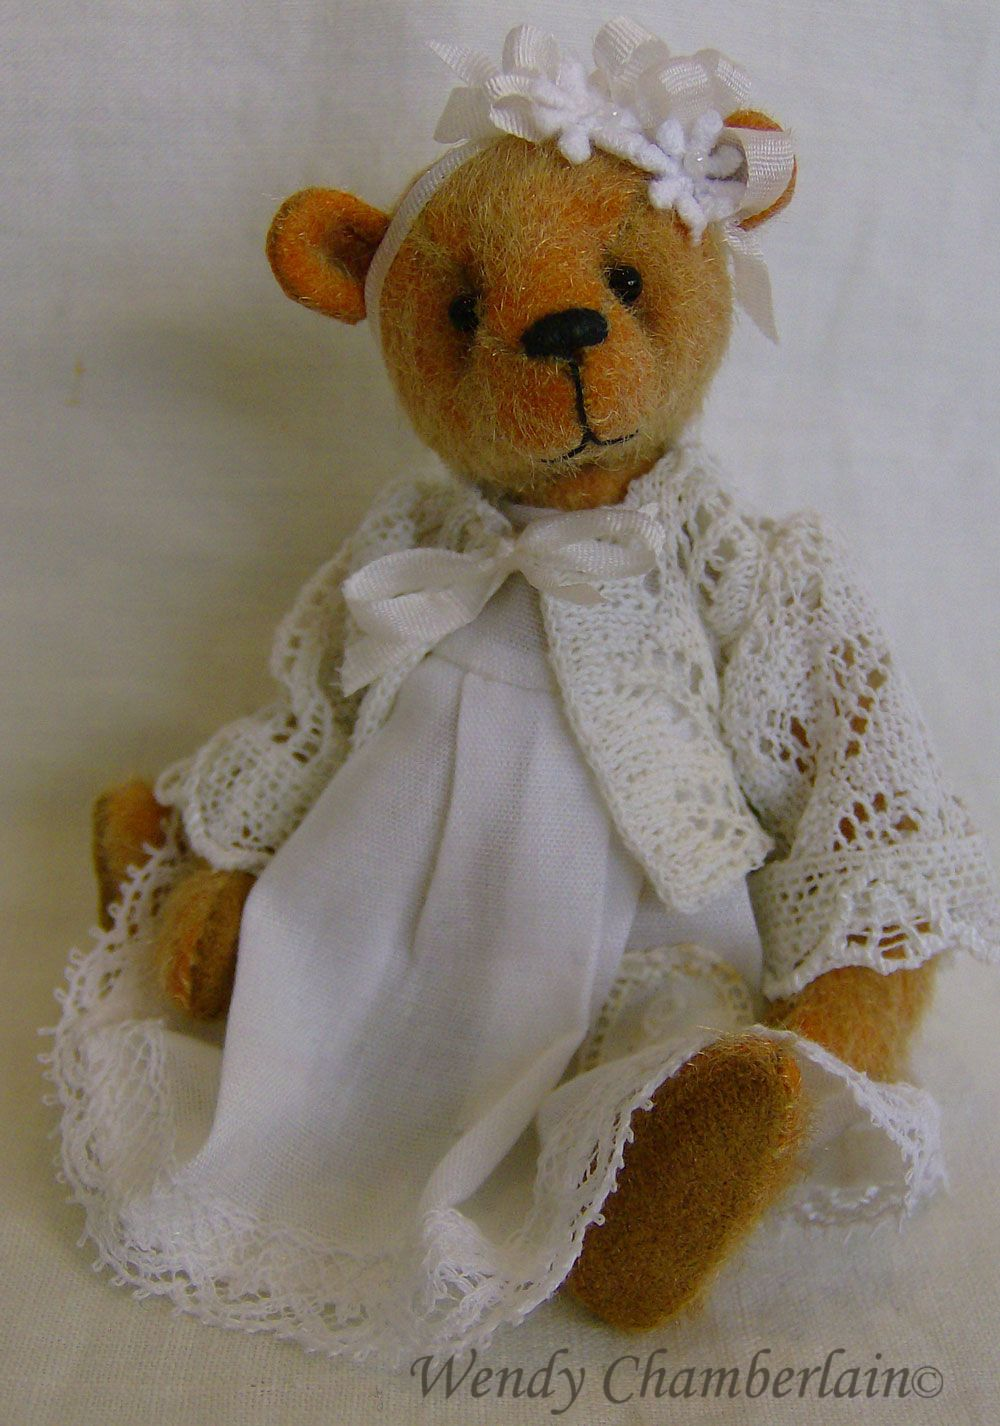 I LOVE bears dressed in Victorian finery! Evangeline - miniature teddy bear #bearbedpillowdolls